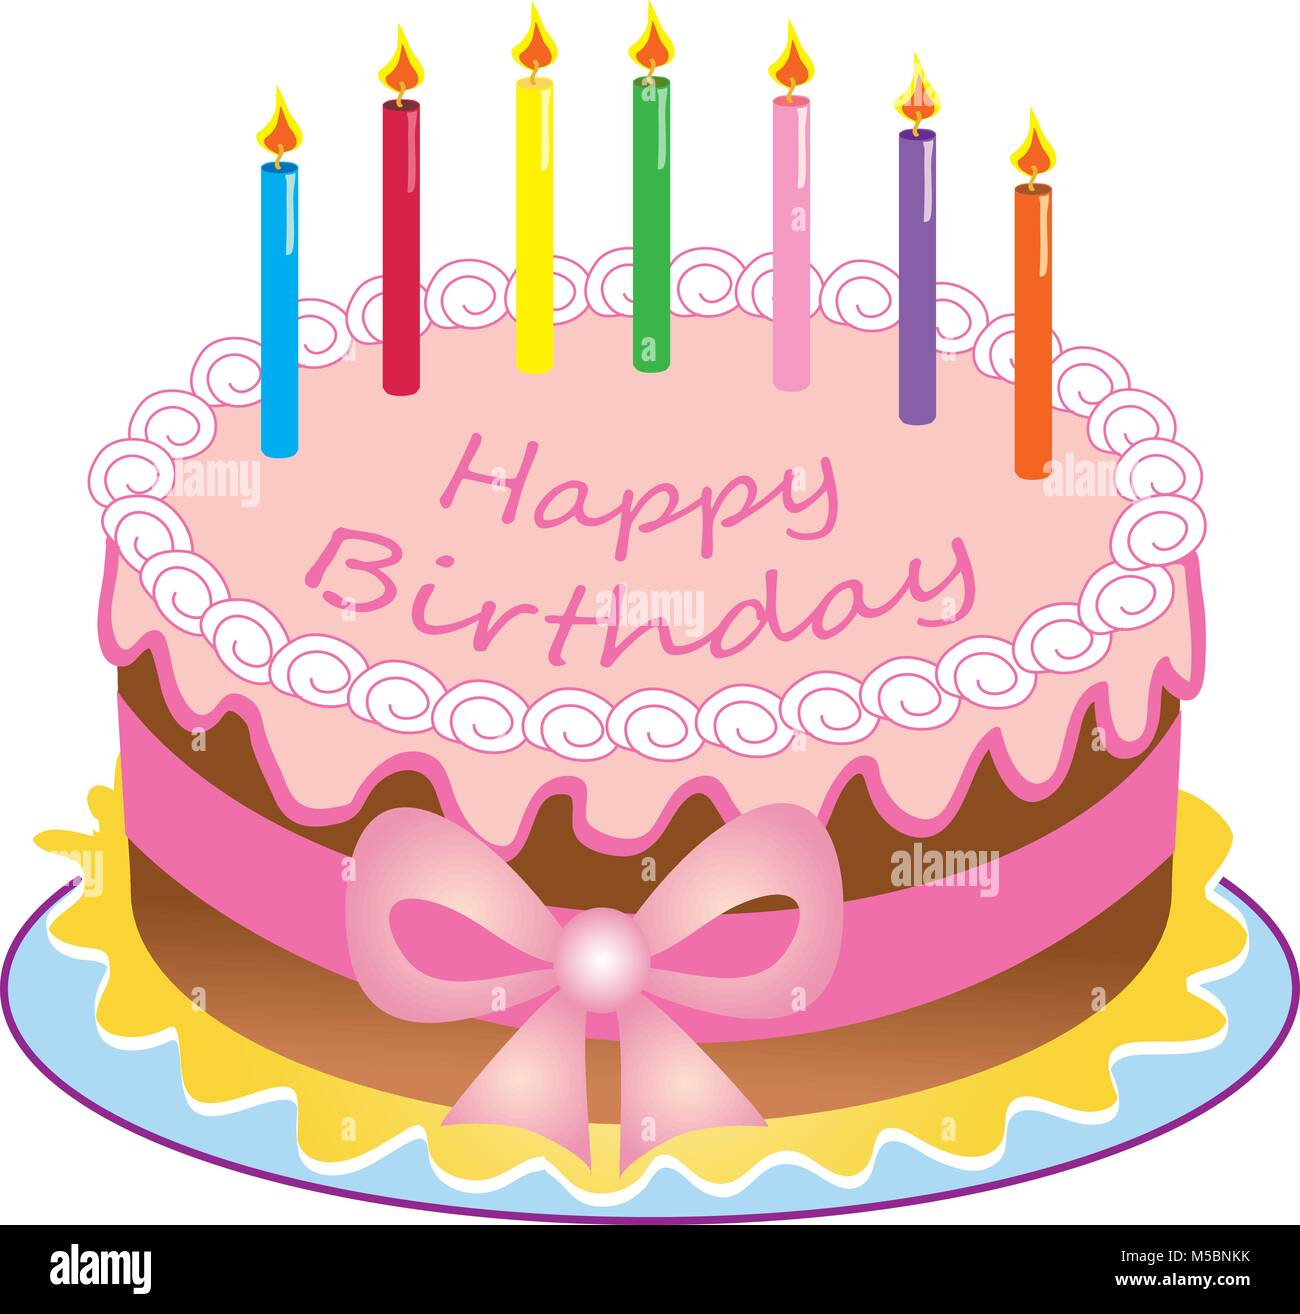 A Cartoon Happy Birthday Cake With Colored Candlessugar Icingribbon And Bow